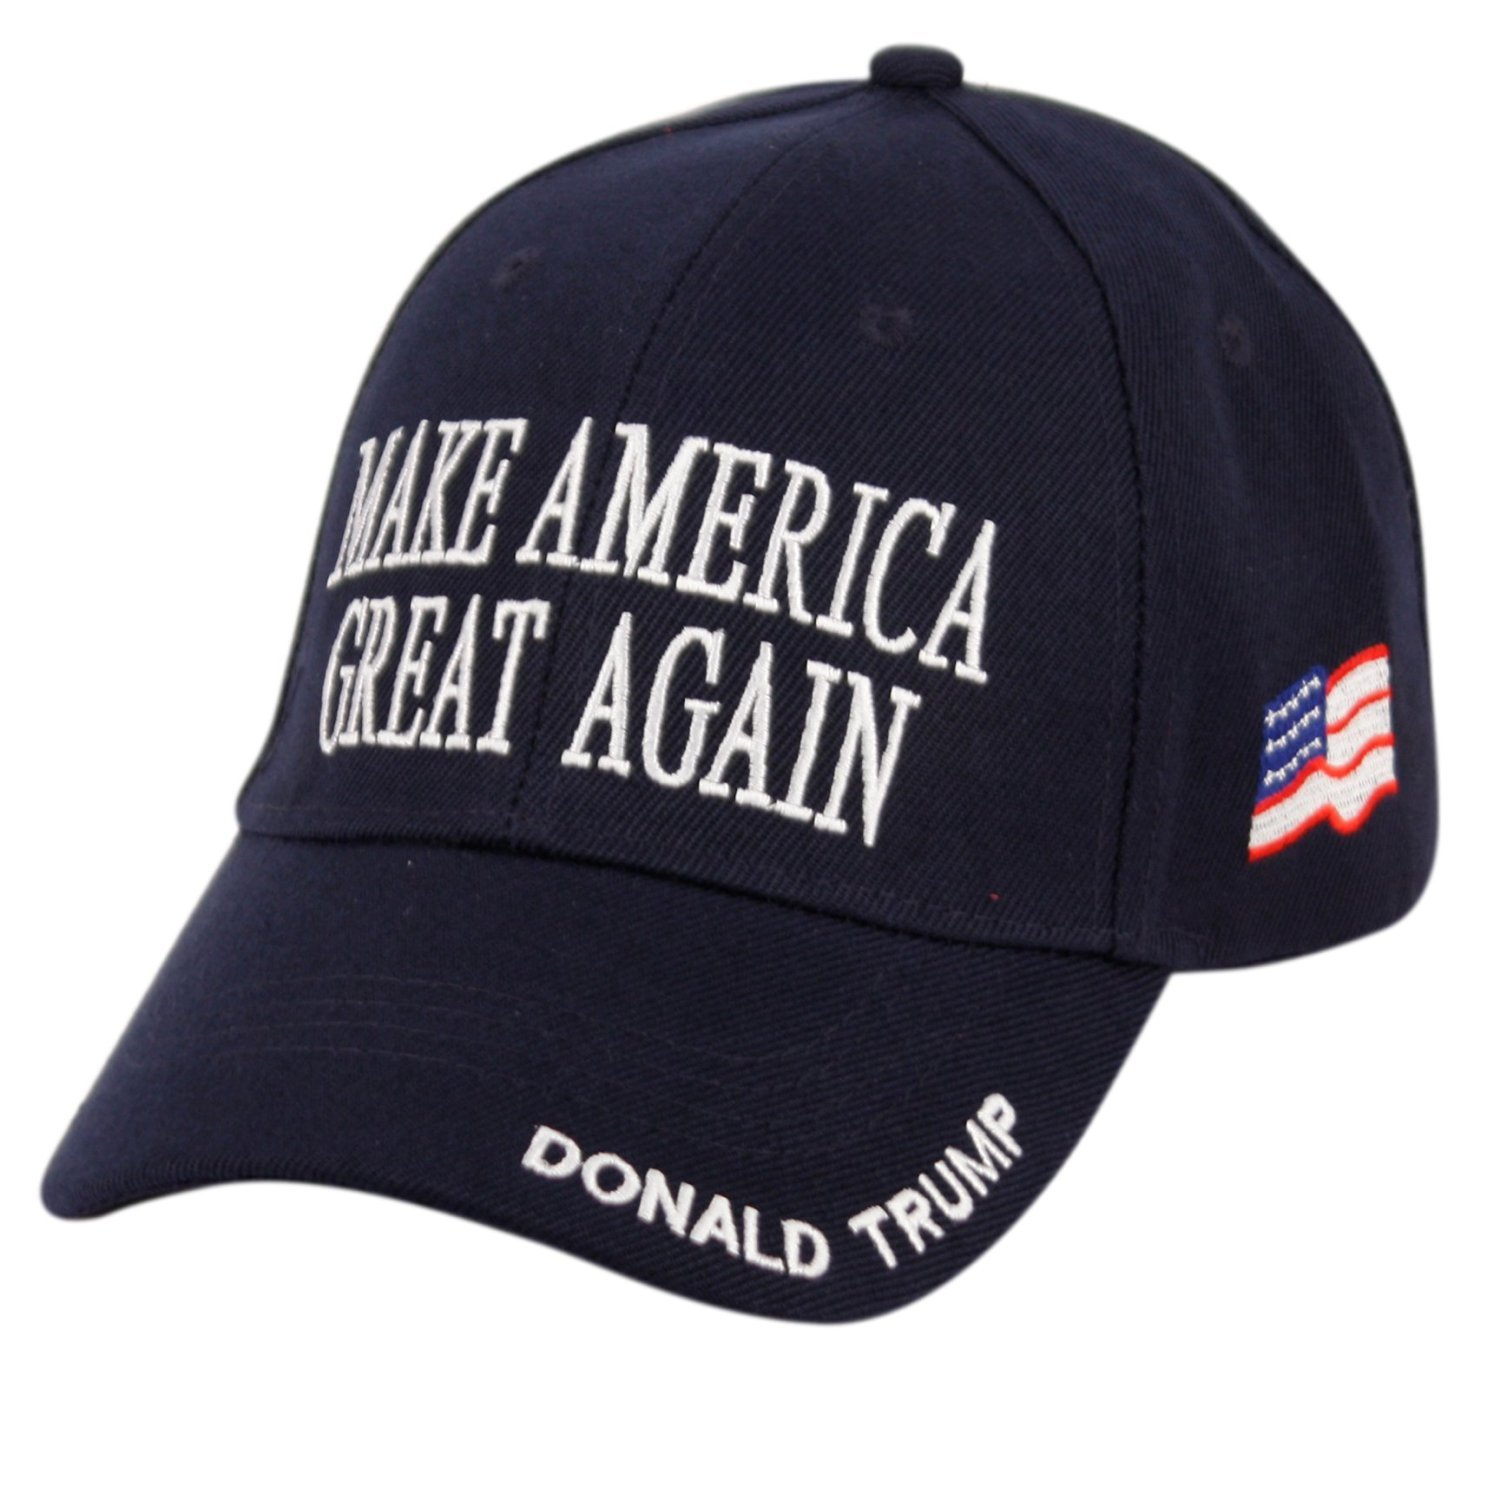 b4607f40b1d9e Amazon.com  Donald Trump Make America Great Again Hats Embroidered ( Camouflage Green)  Clothing